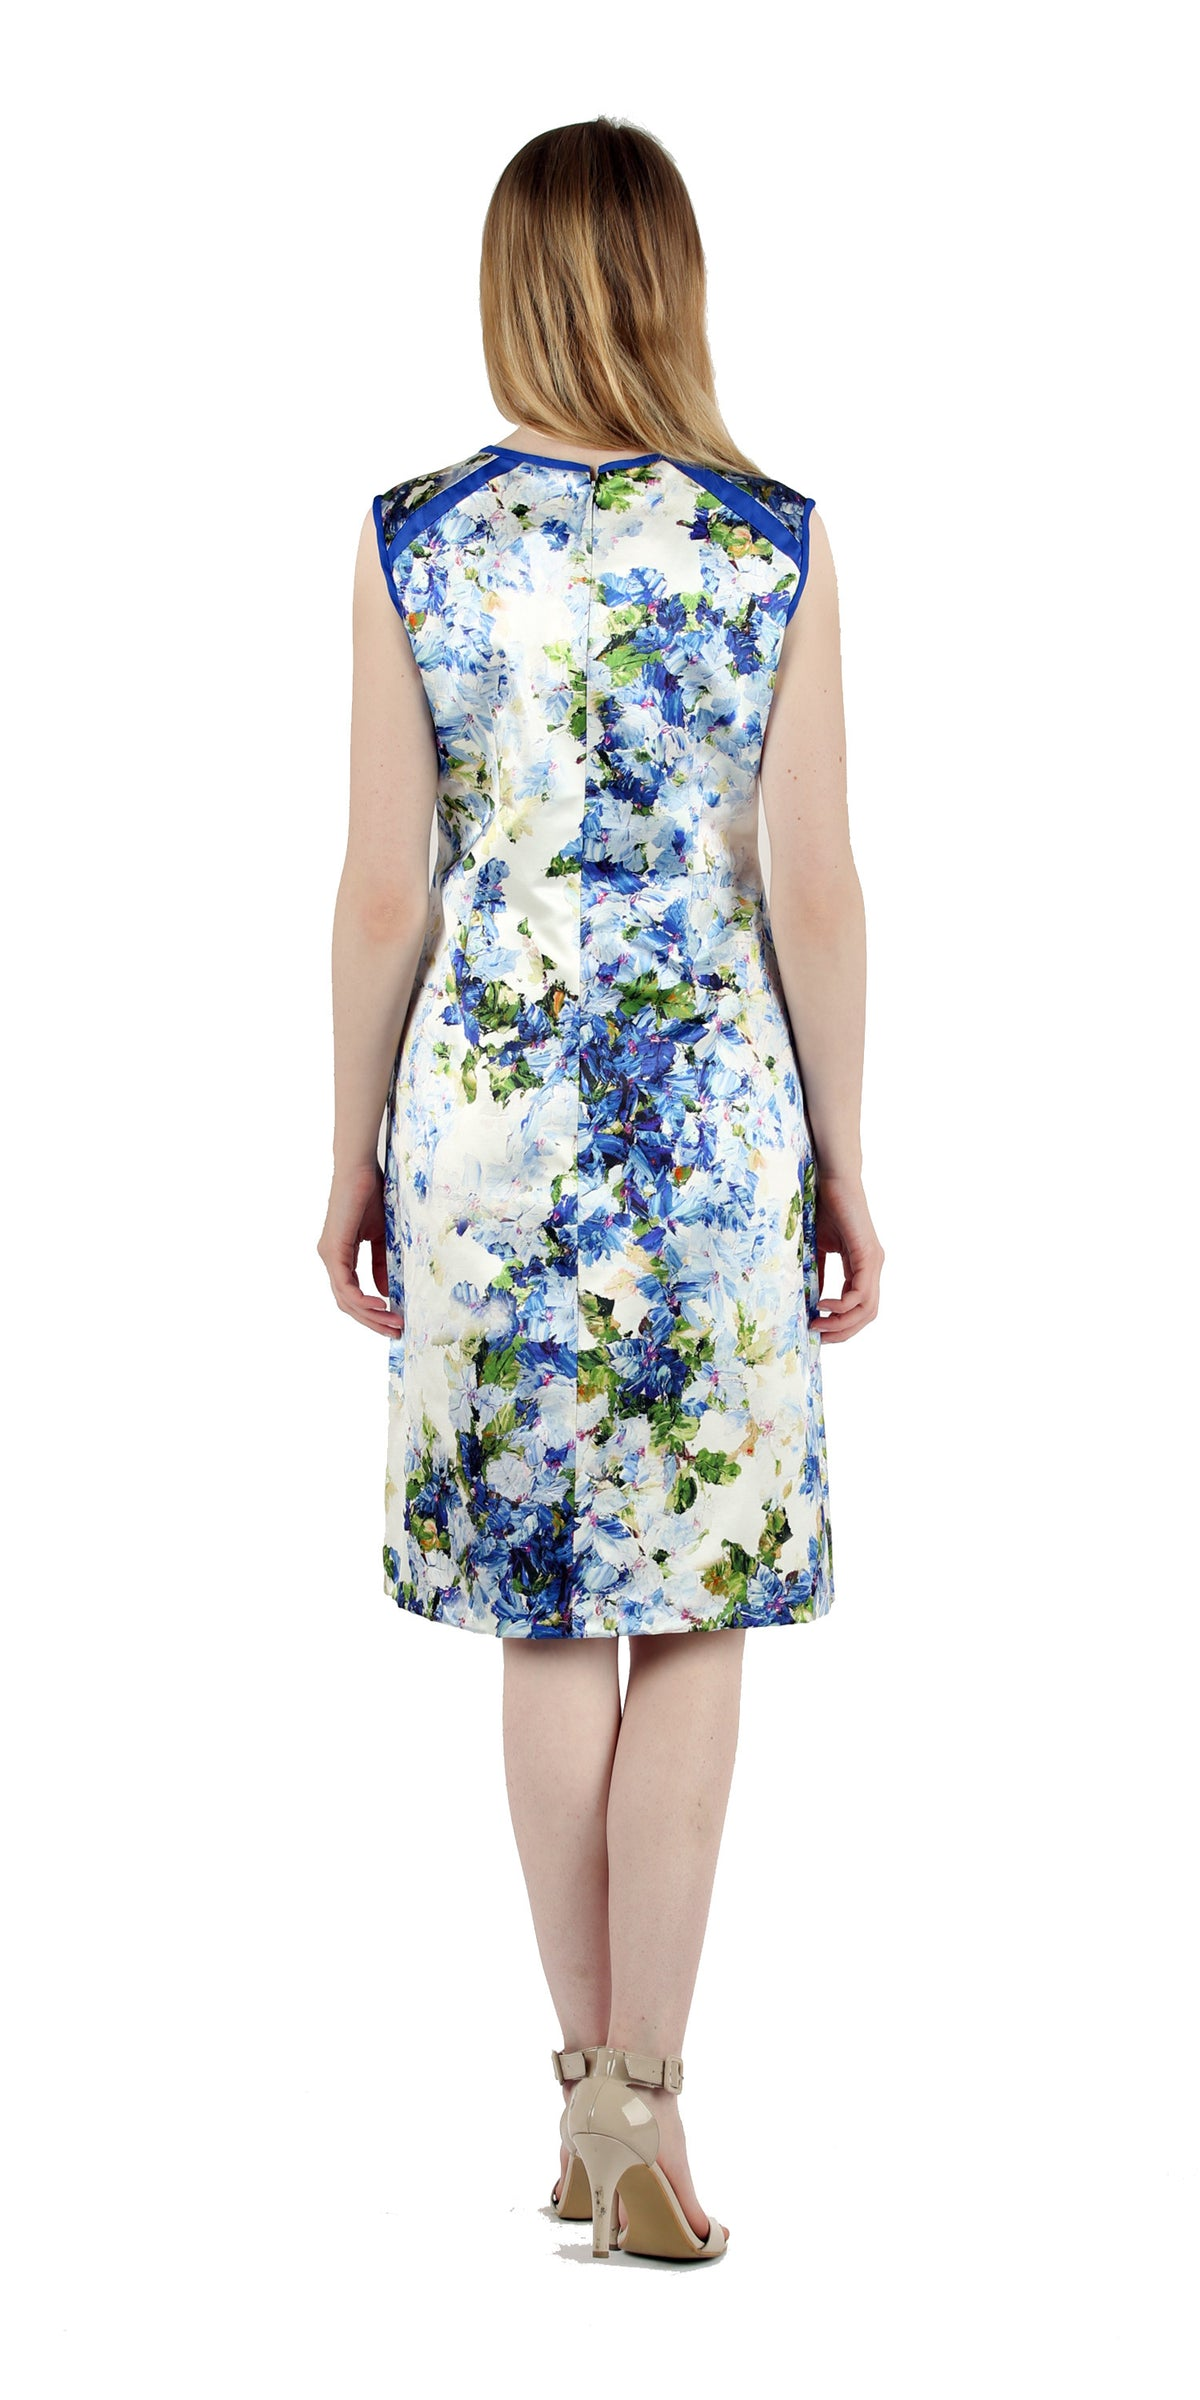 Blue & White Floral Silk Dress with Matching Bolero